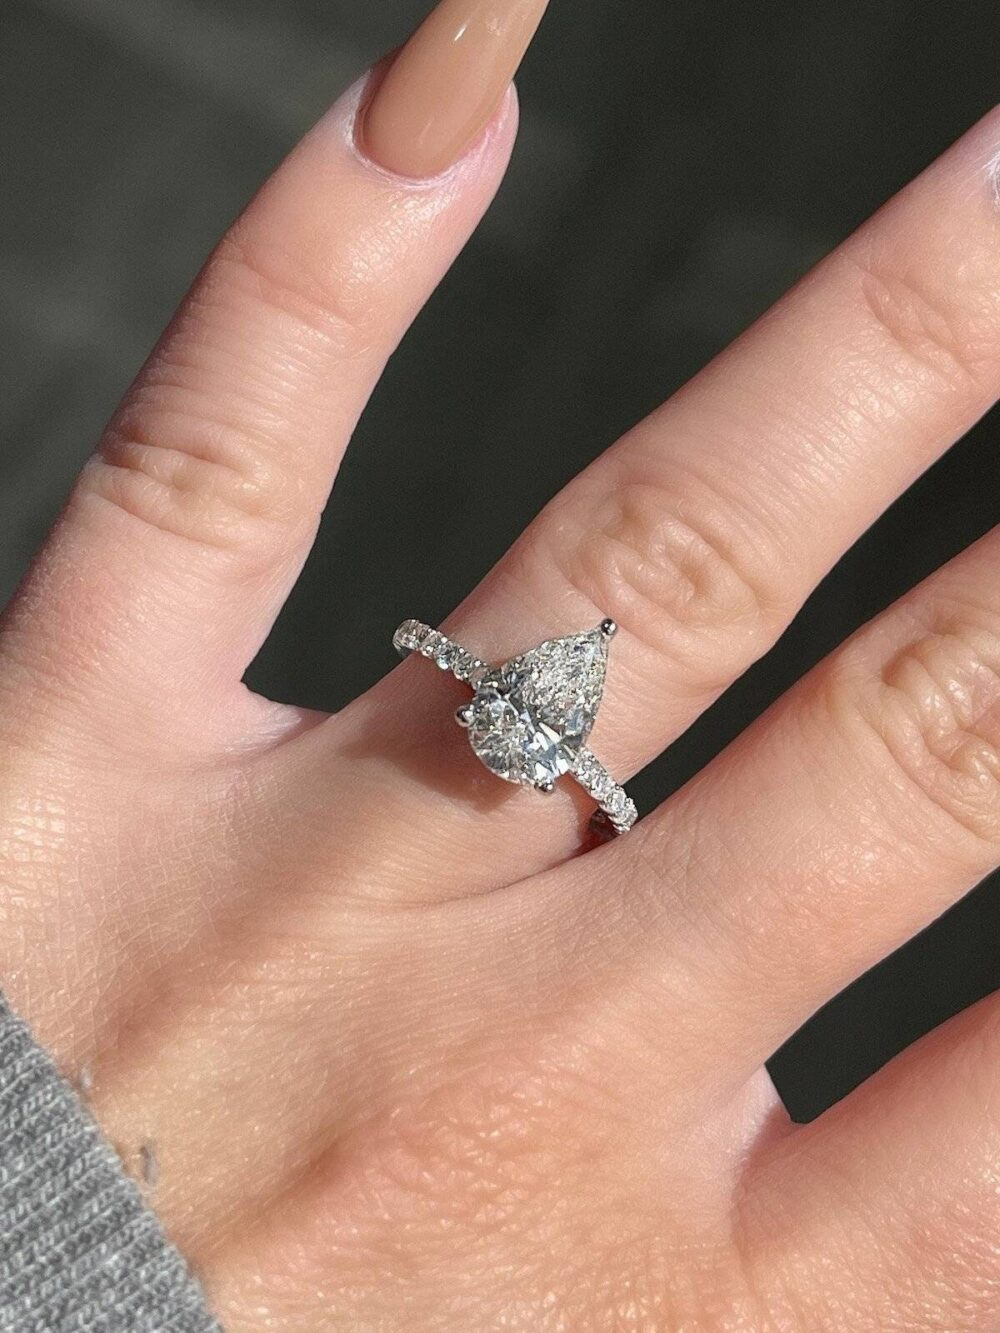 Unique Pear Shaped Moissanite Engagement Ring, 2Ct Moissanite Ring , Halo Diamond , Bridal Ring, Anniversary Wedding Rings, Gift For Her